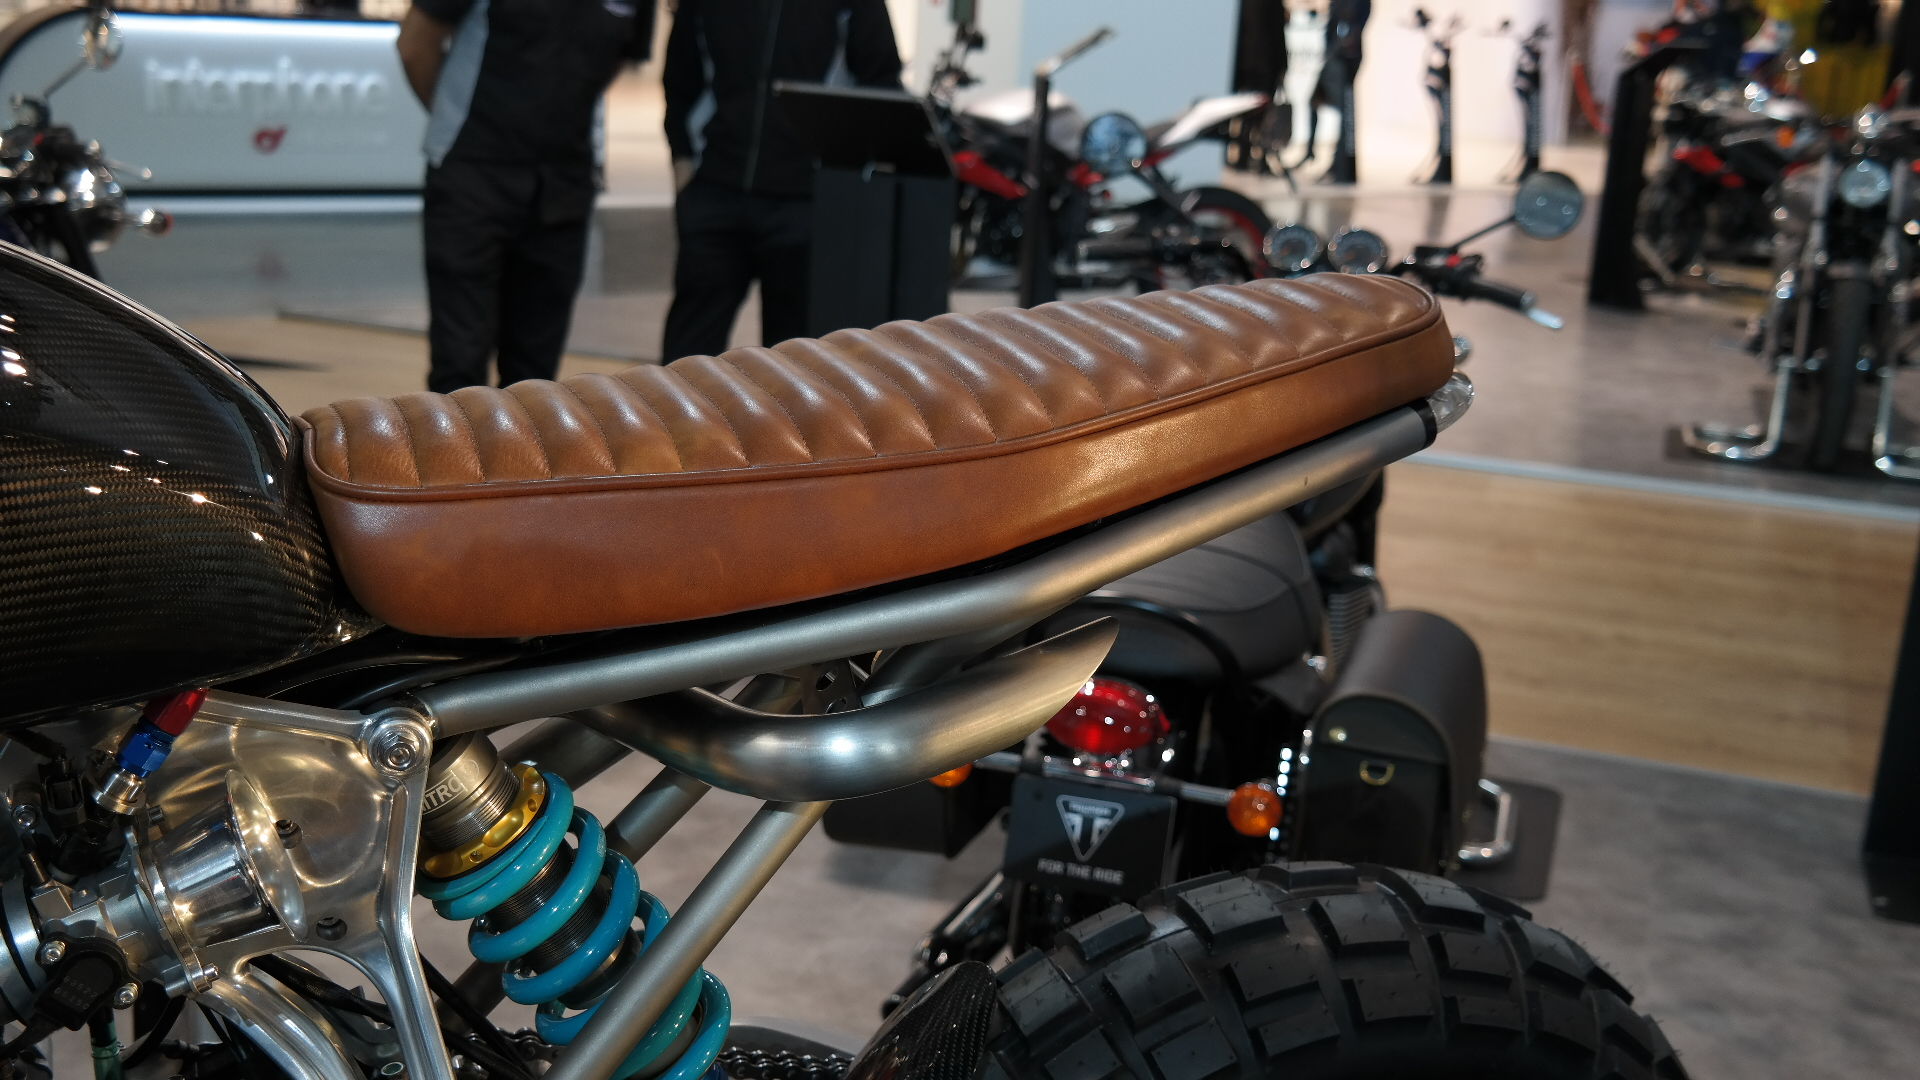 The Stunning Triumph Bonneville Concepts Of Eicma 2014